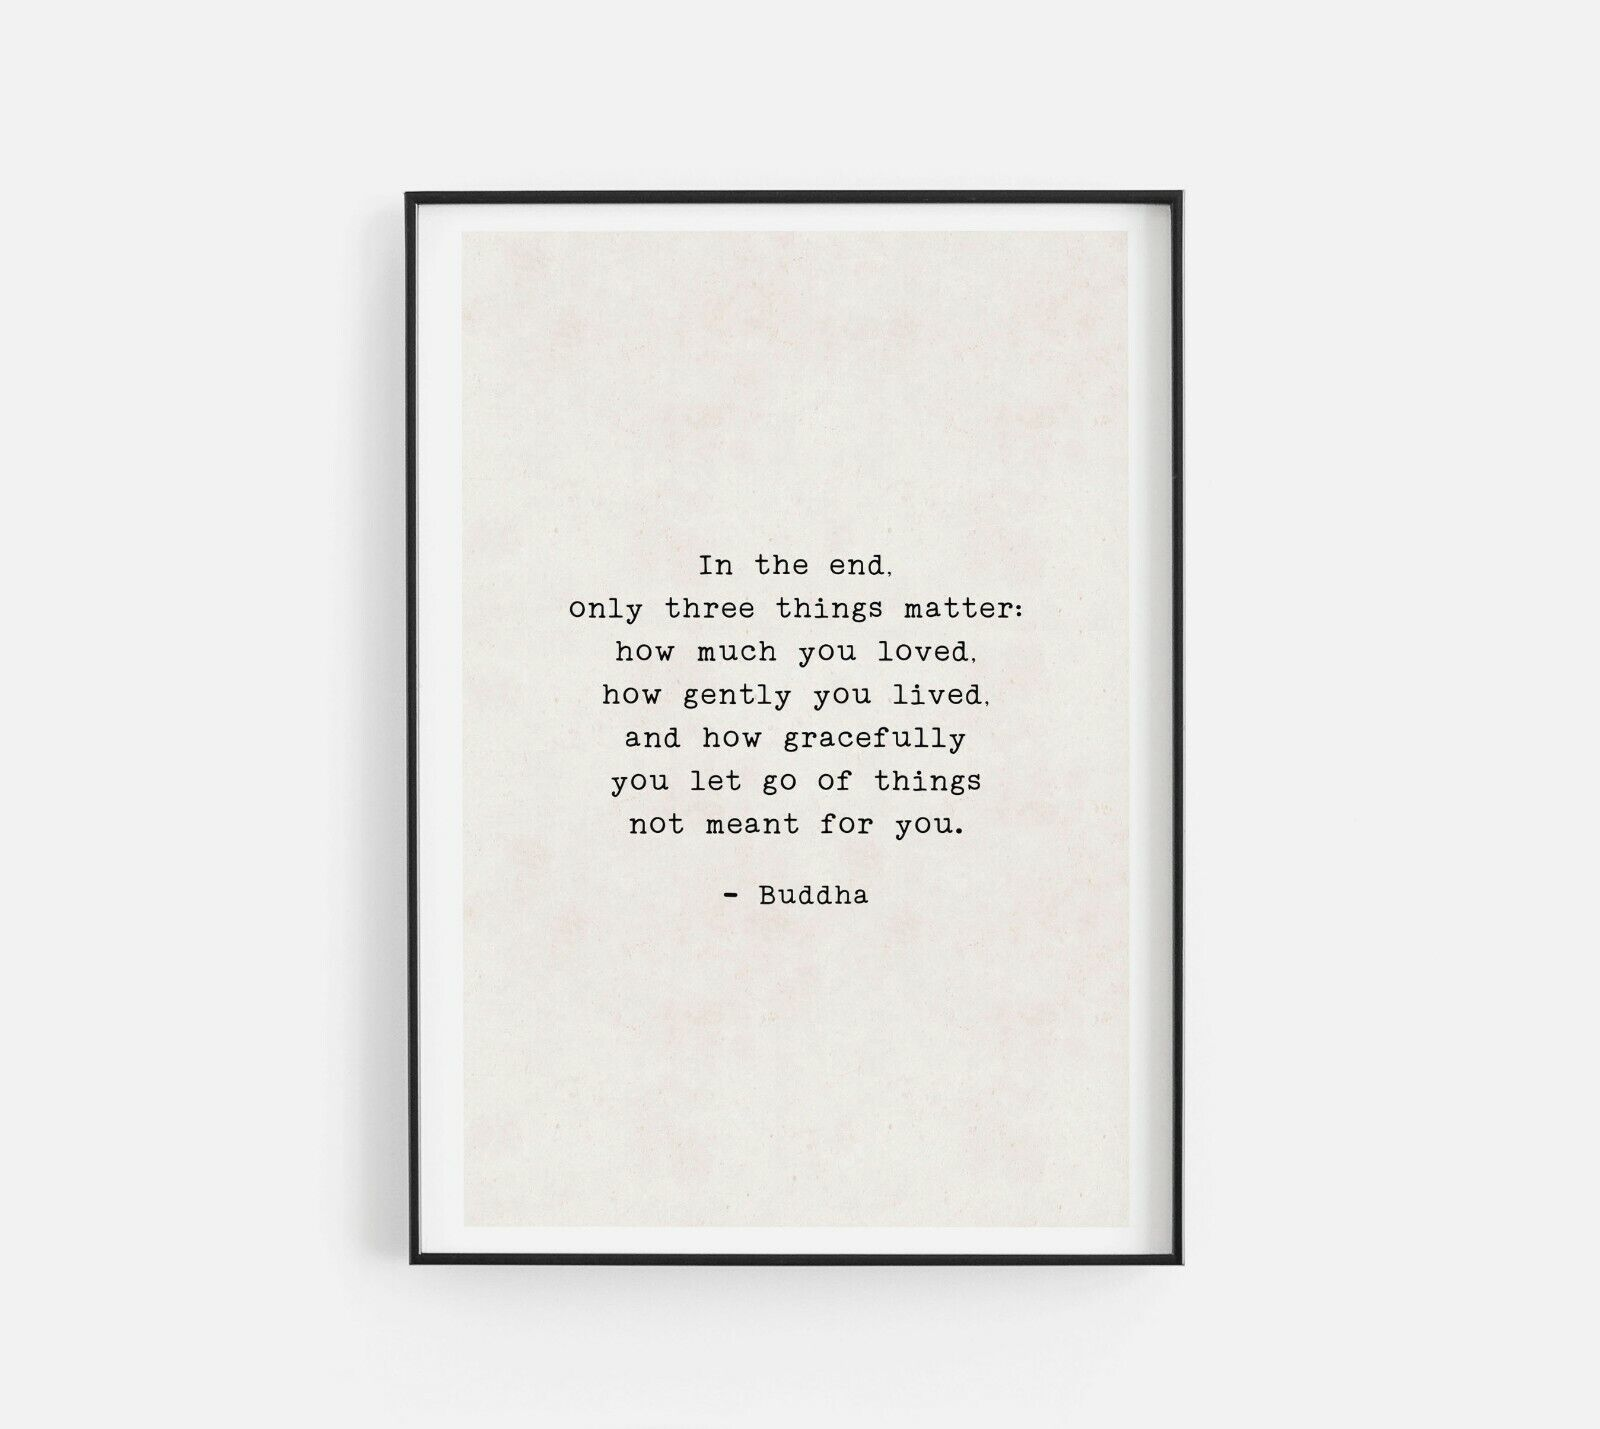 Home Decoration - In The End Buddha Life Quote Inspirational Poster Print Home Room Wall Art Decor